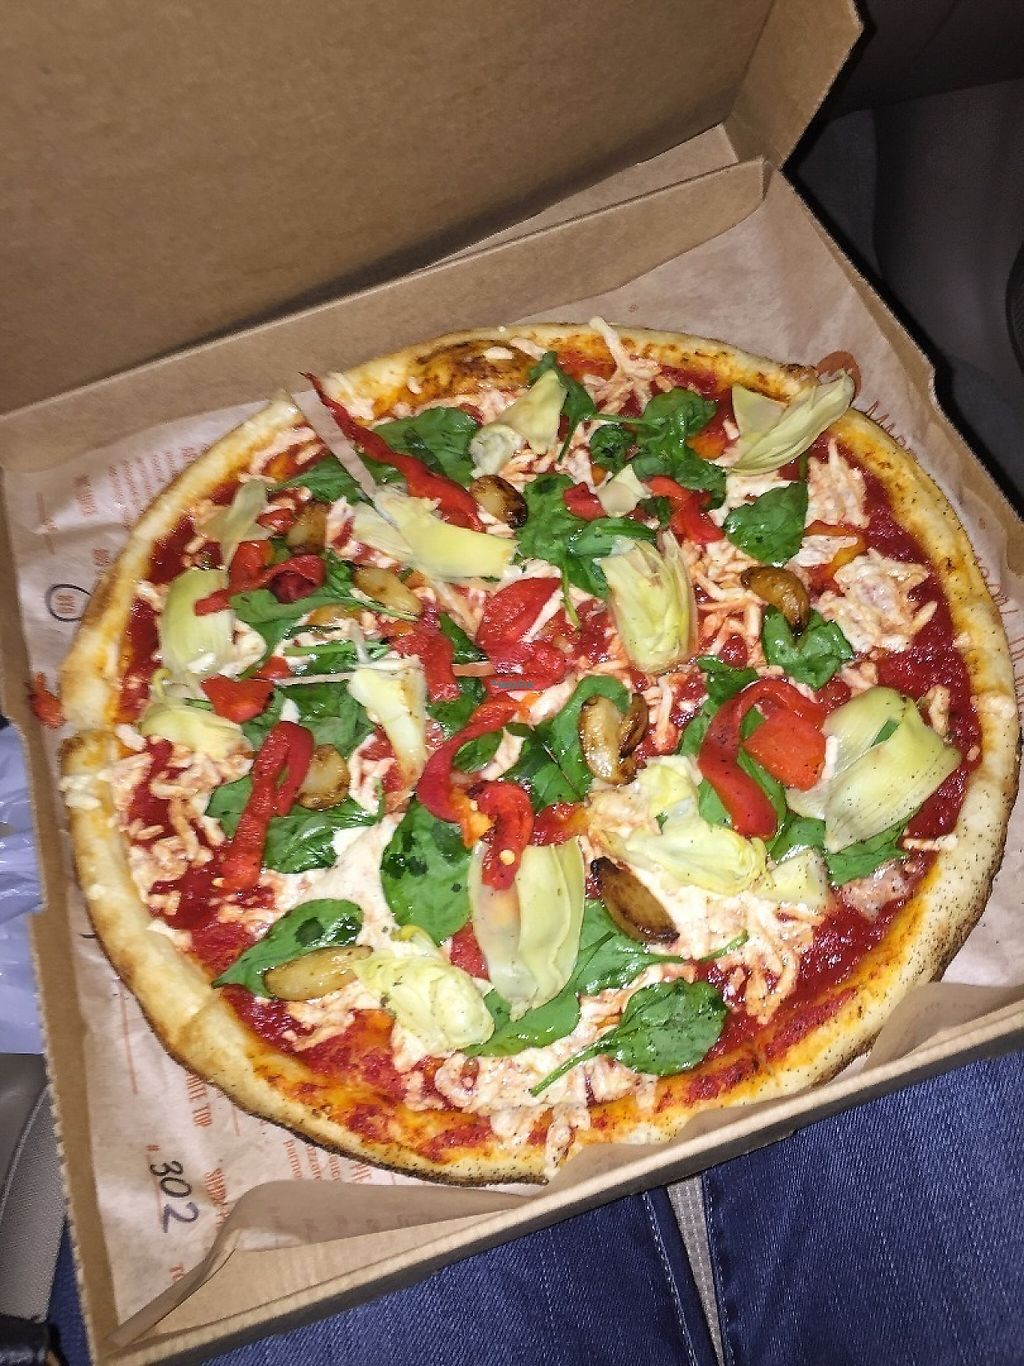 "Photo of Blaze Pizza  by <a href=""/members/profile/PlantPrincesa"">PlantPrincesa</a> <br/>Regular crust, red sauce, vegan cheese, artichokes, roasted garlic, spinach, & roasted red peppers <br/> December 30, 2016  - <a href='/contact/abuse/image/84117/206241'>Report</a>"